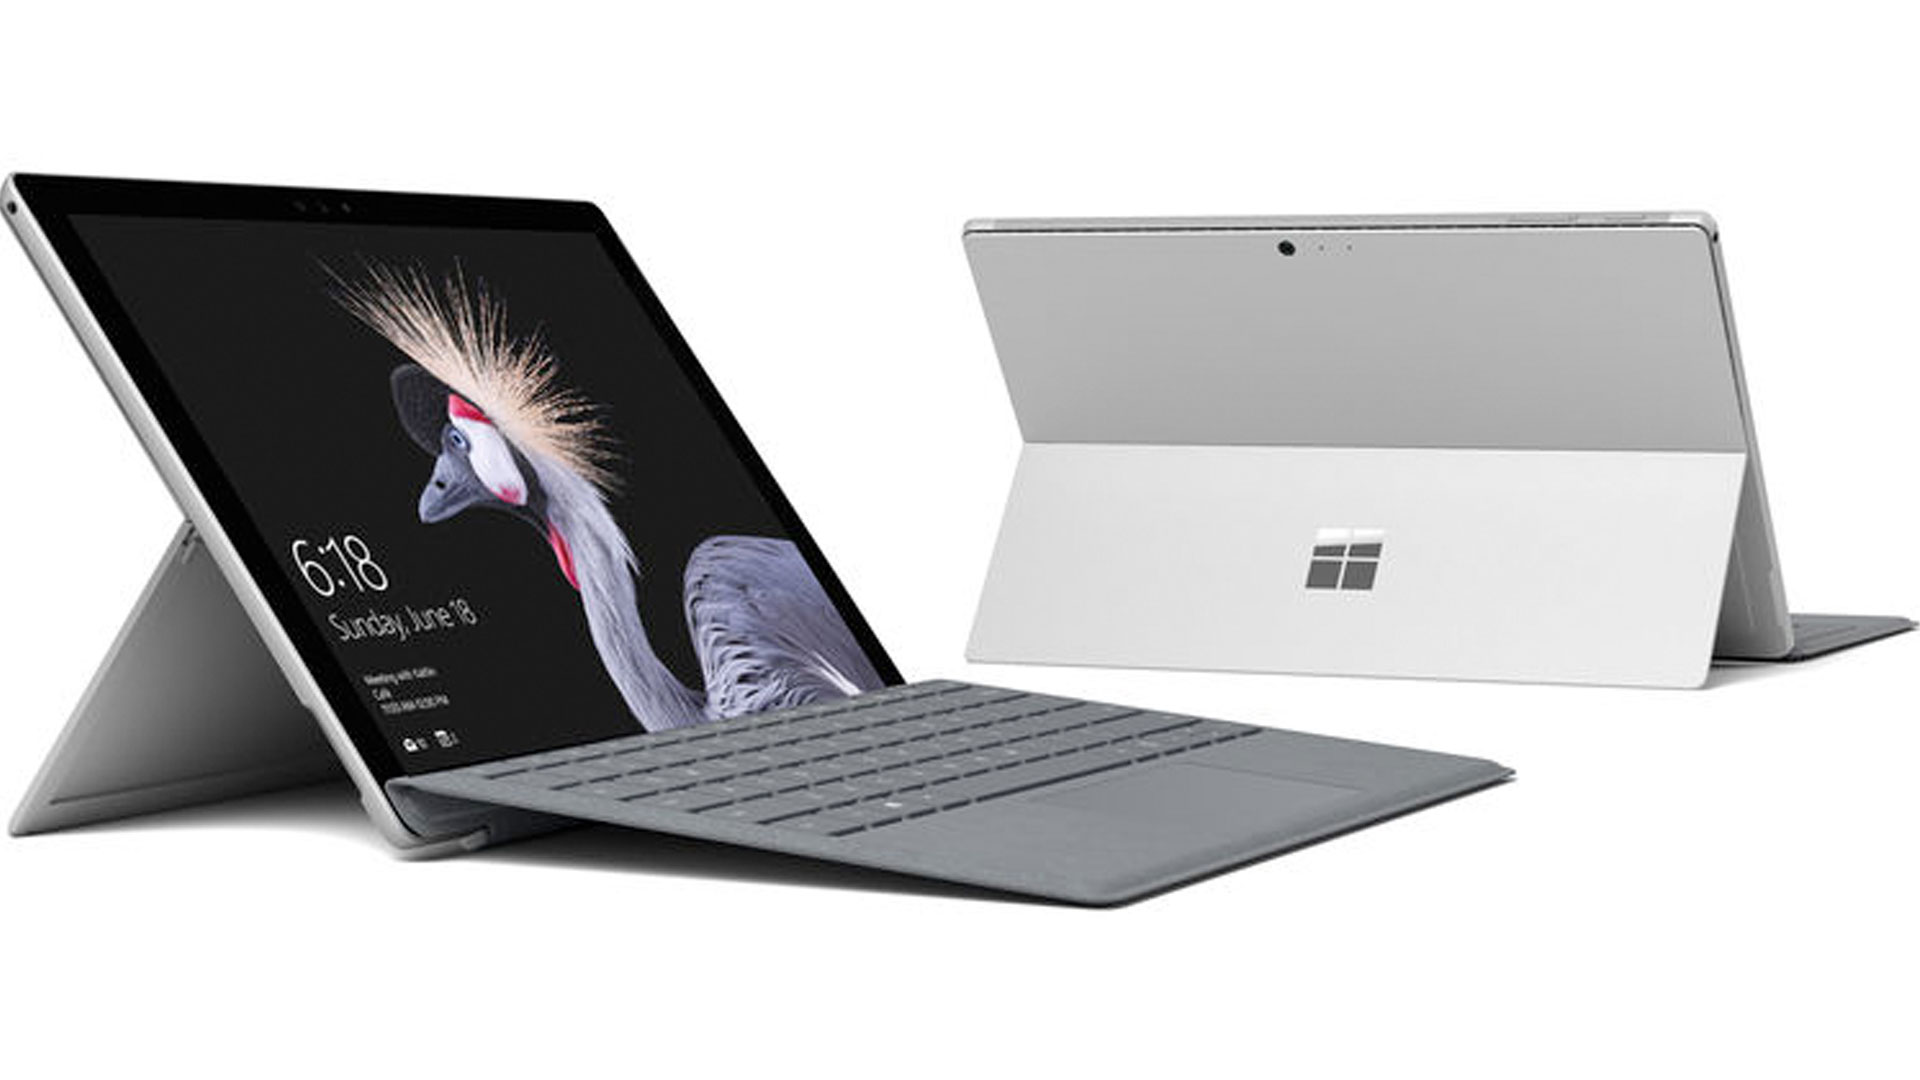 Microsoft's Surface Pro sports an i5, 8GB RAM, 128GB SSD, more for $799 (Reg. $1,159)